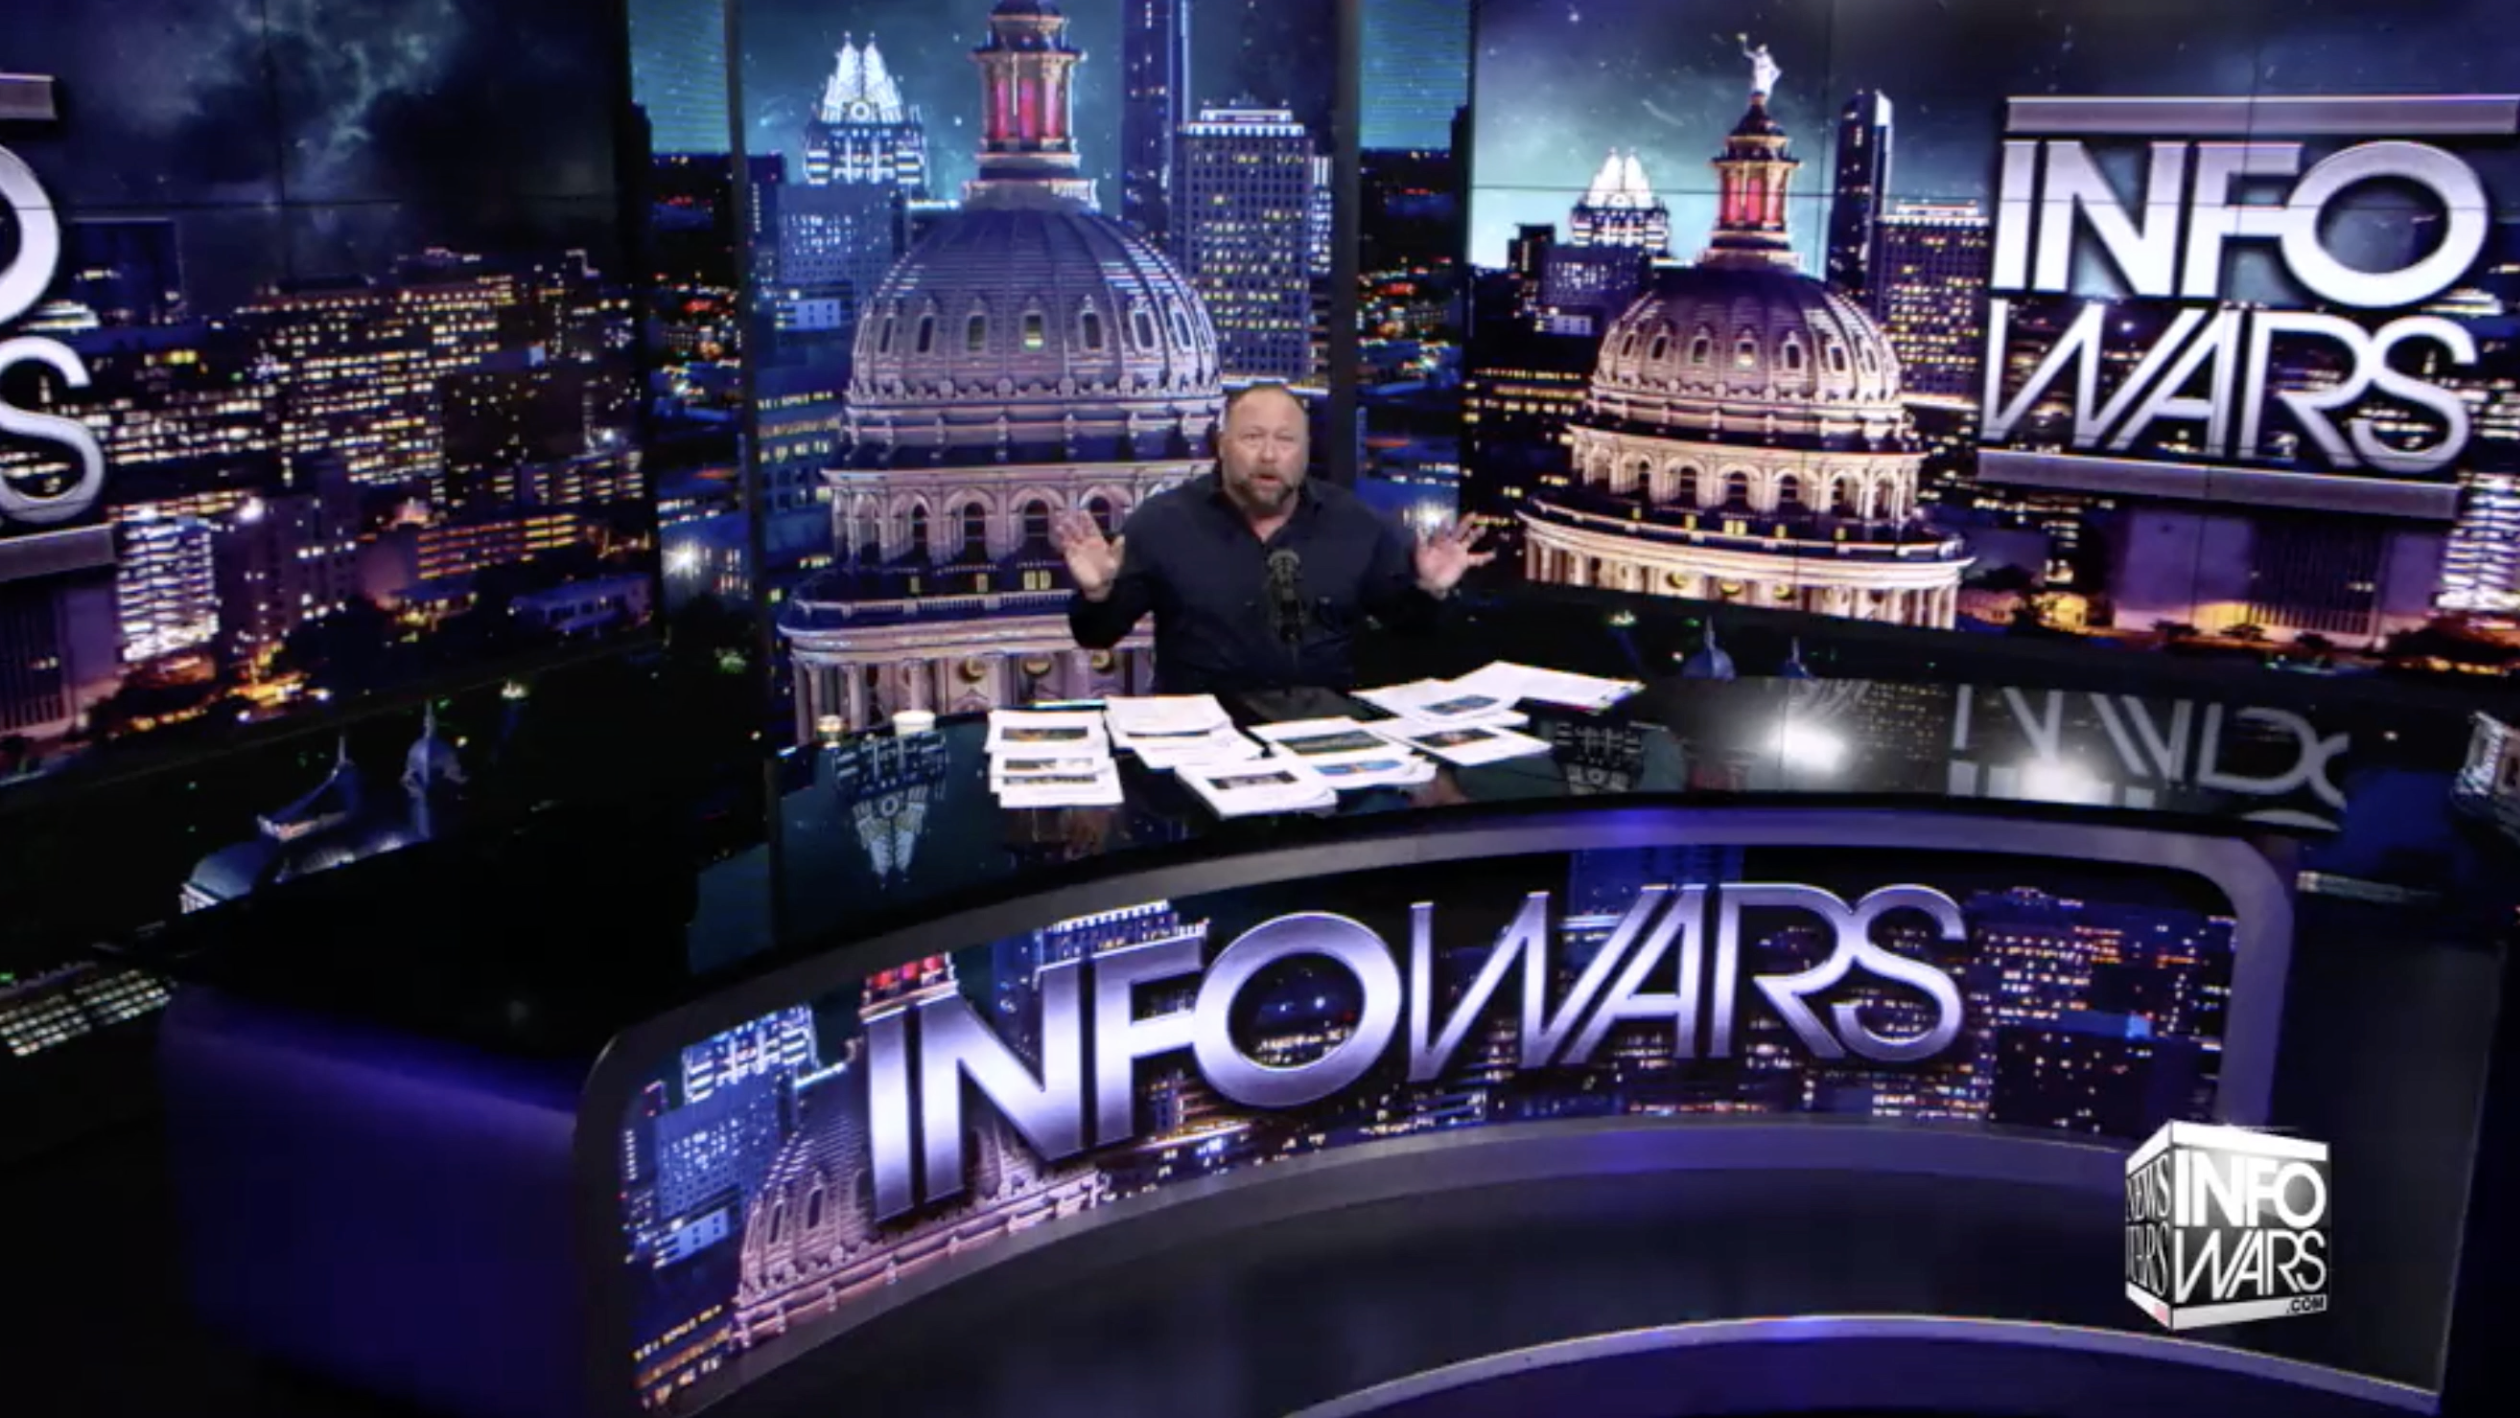 Alex Jones Infowars Studio The Resistance Video EXZM Zack Mount January 15th 2021